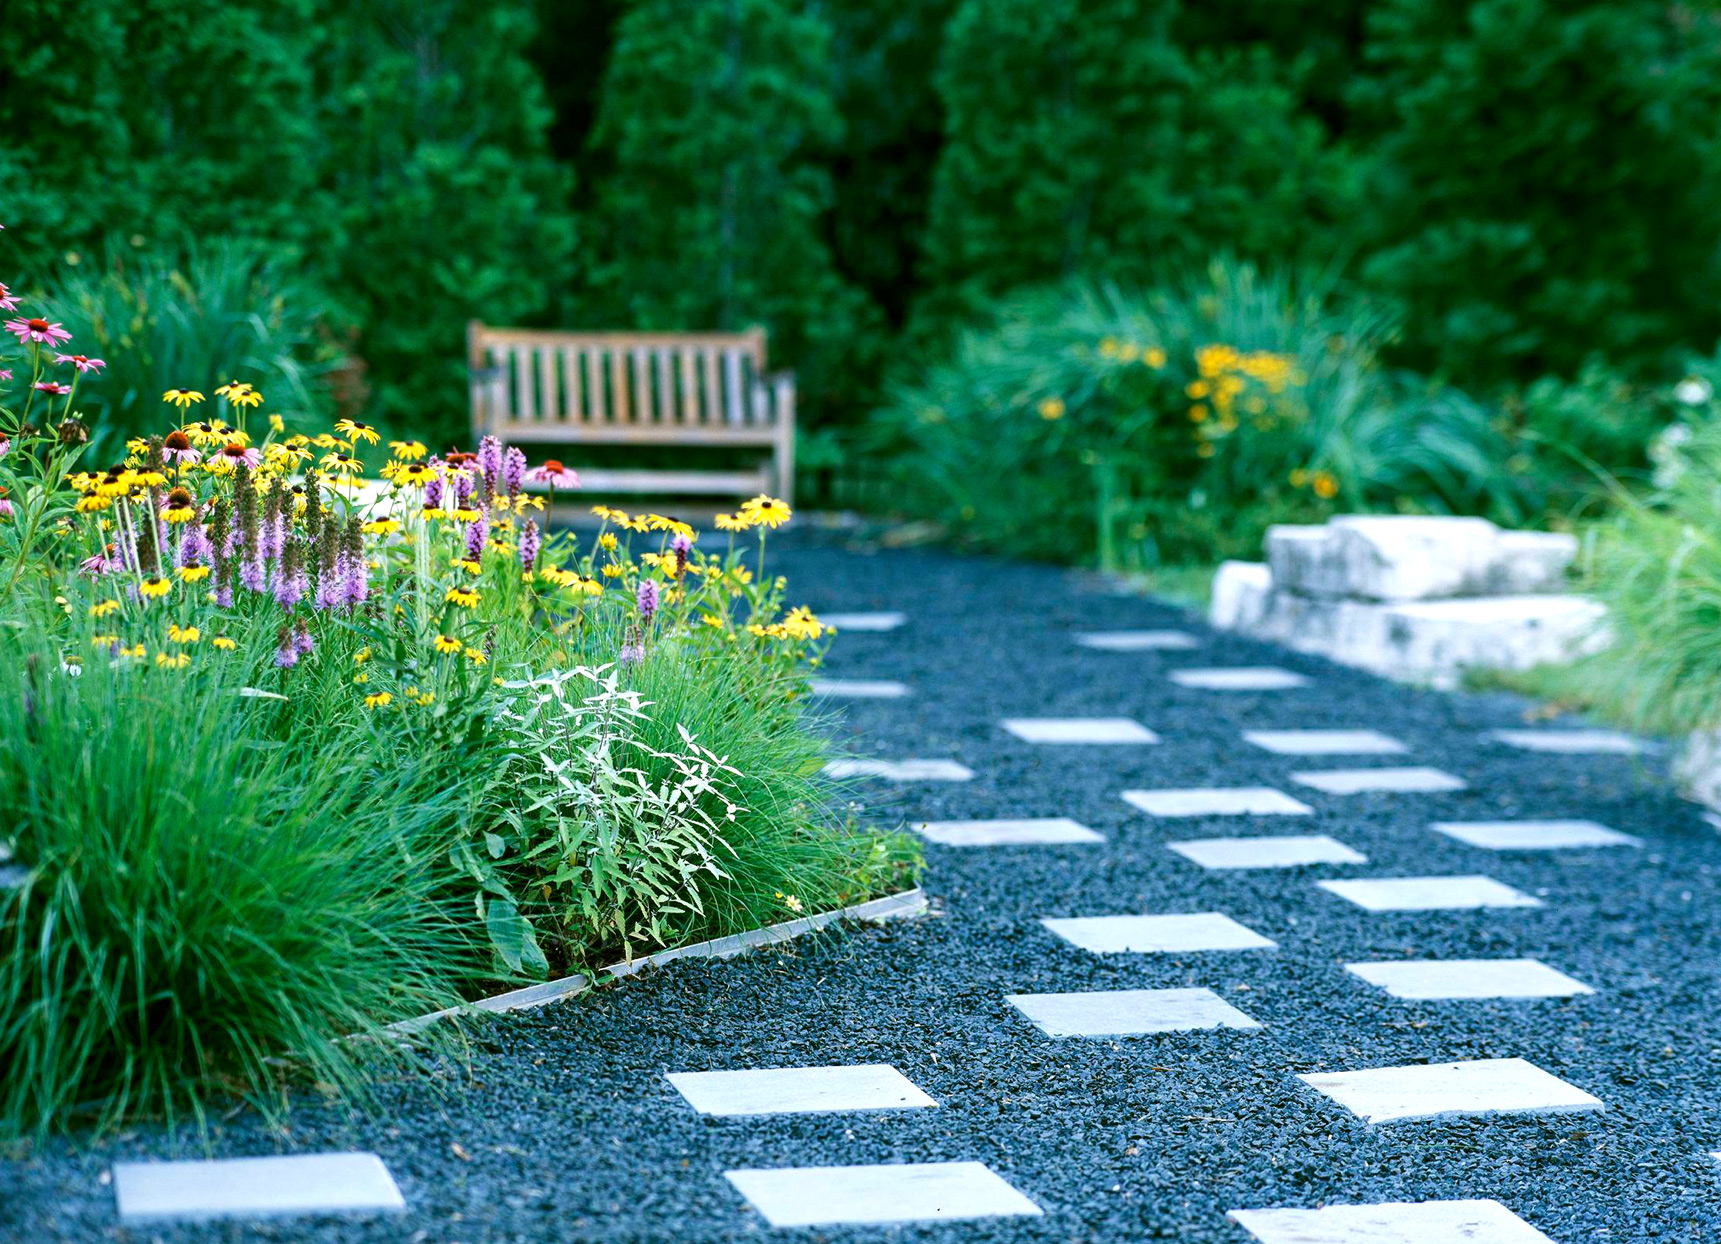 pebbled path with checkered blocks and wild flowers